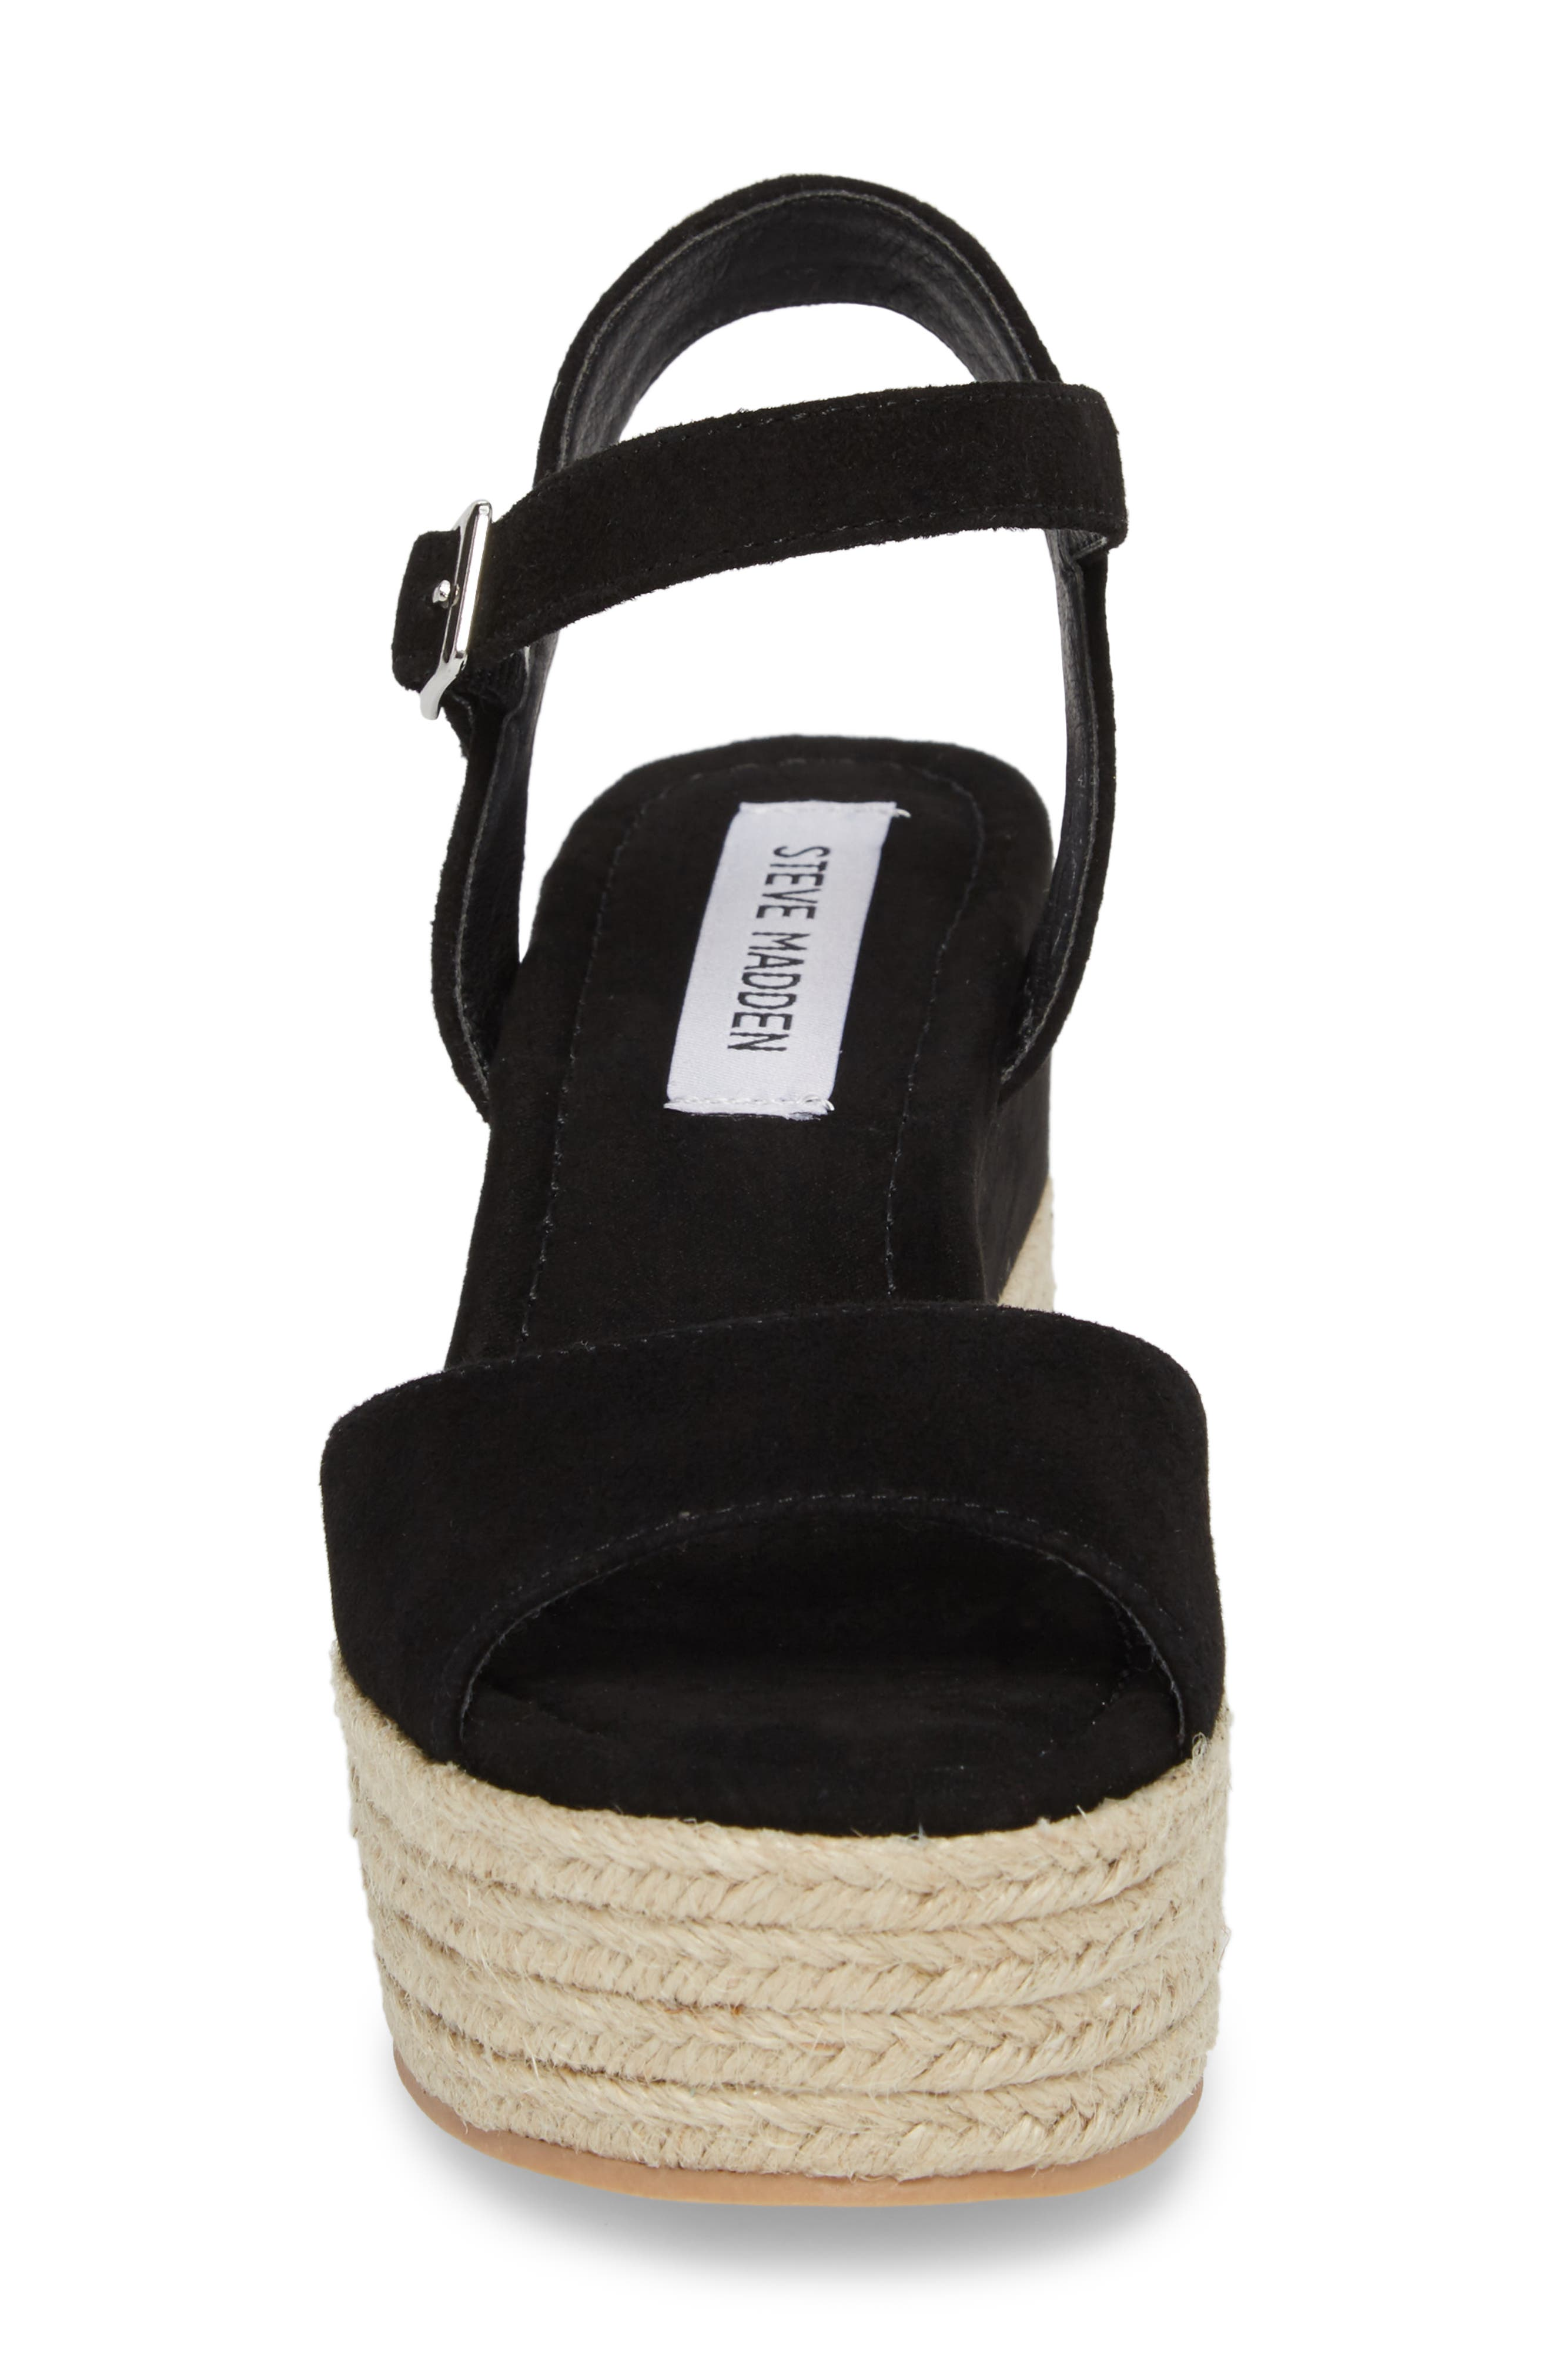 Kianna Espadrille Wedge Sandal,                             Alternate thumbnail 4, color,                             BLACK SUEDE